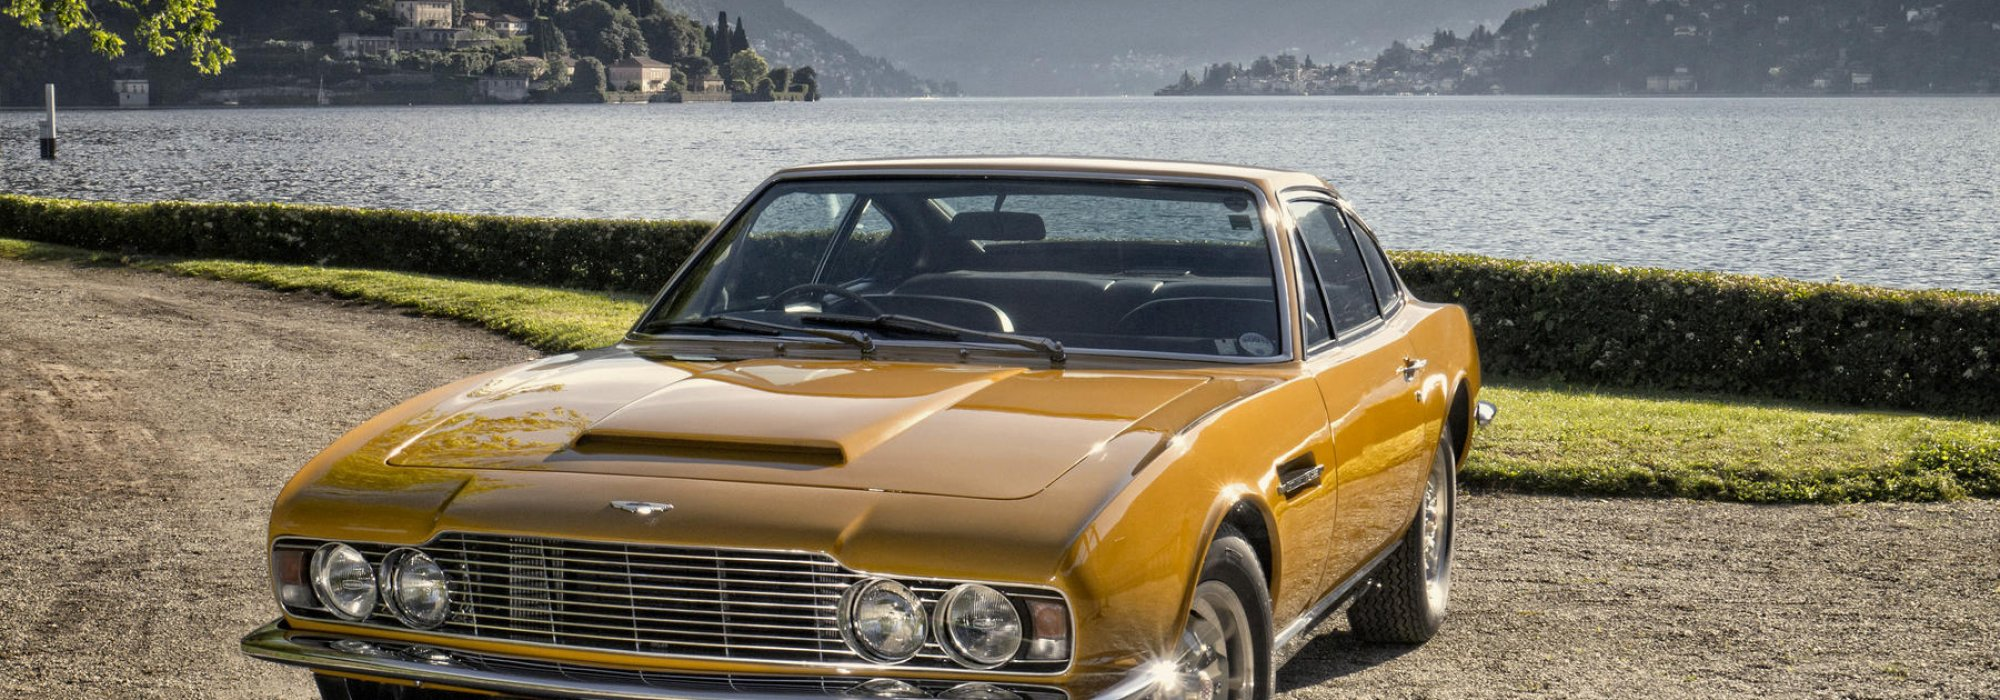 Aston Martin DBS V8 sports saloon